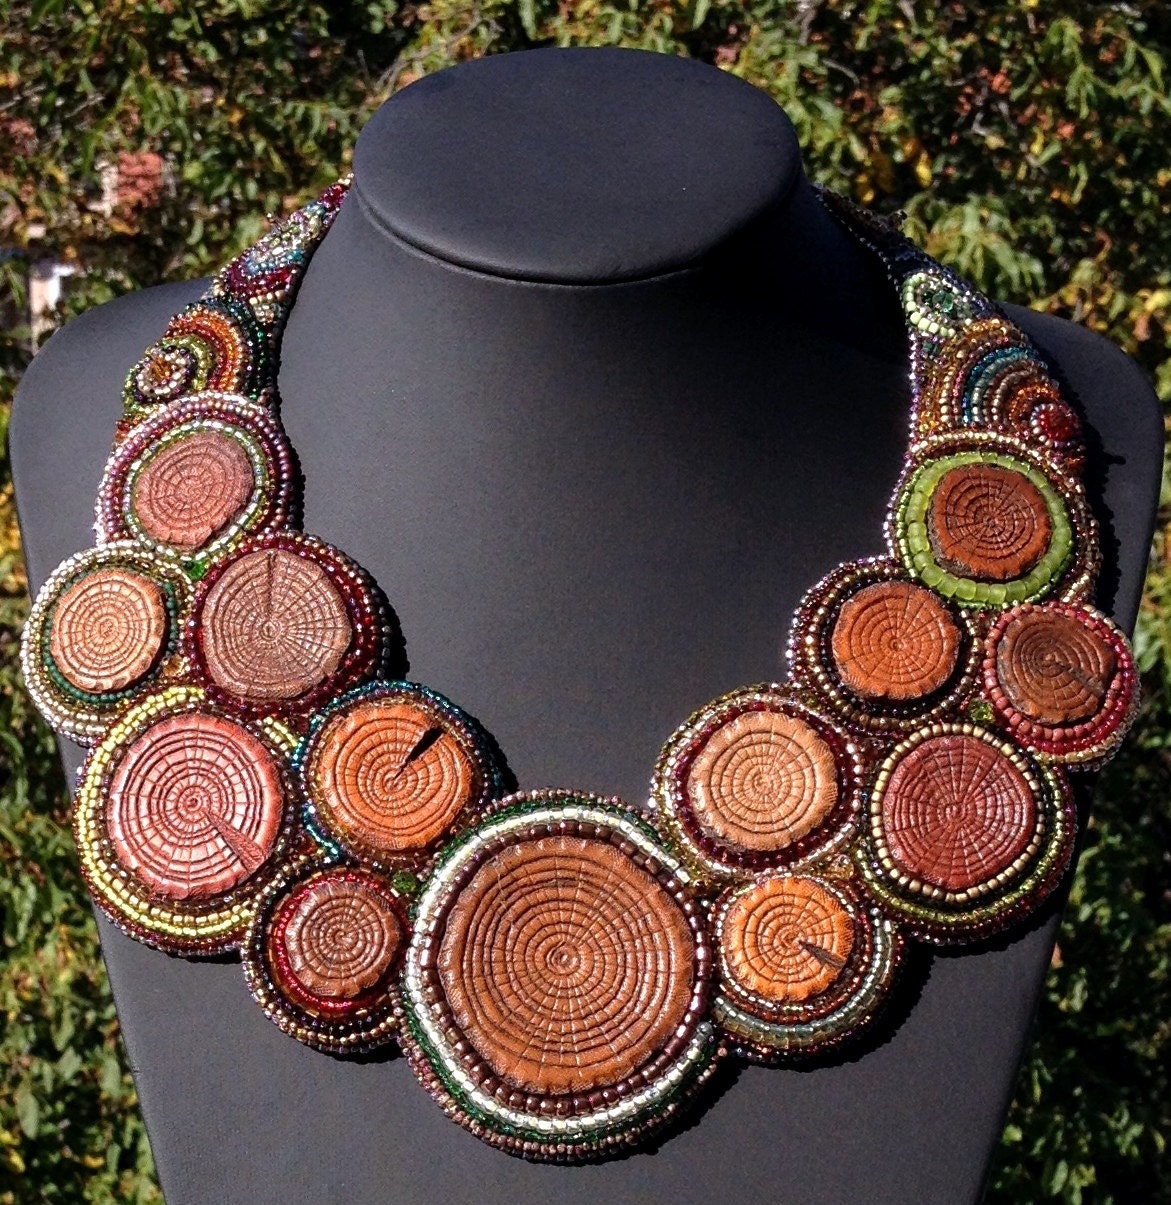 Handmade boho necklace tooled leather and bead embroidery